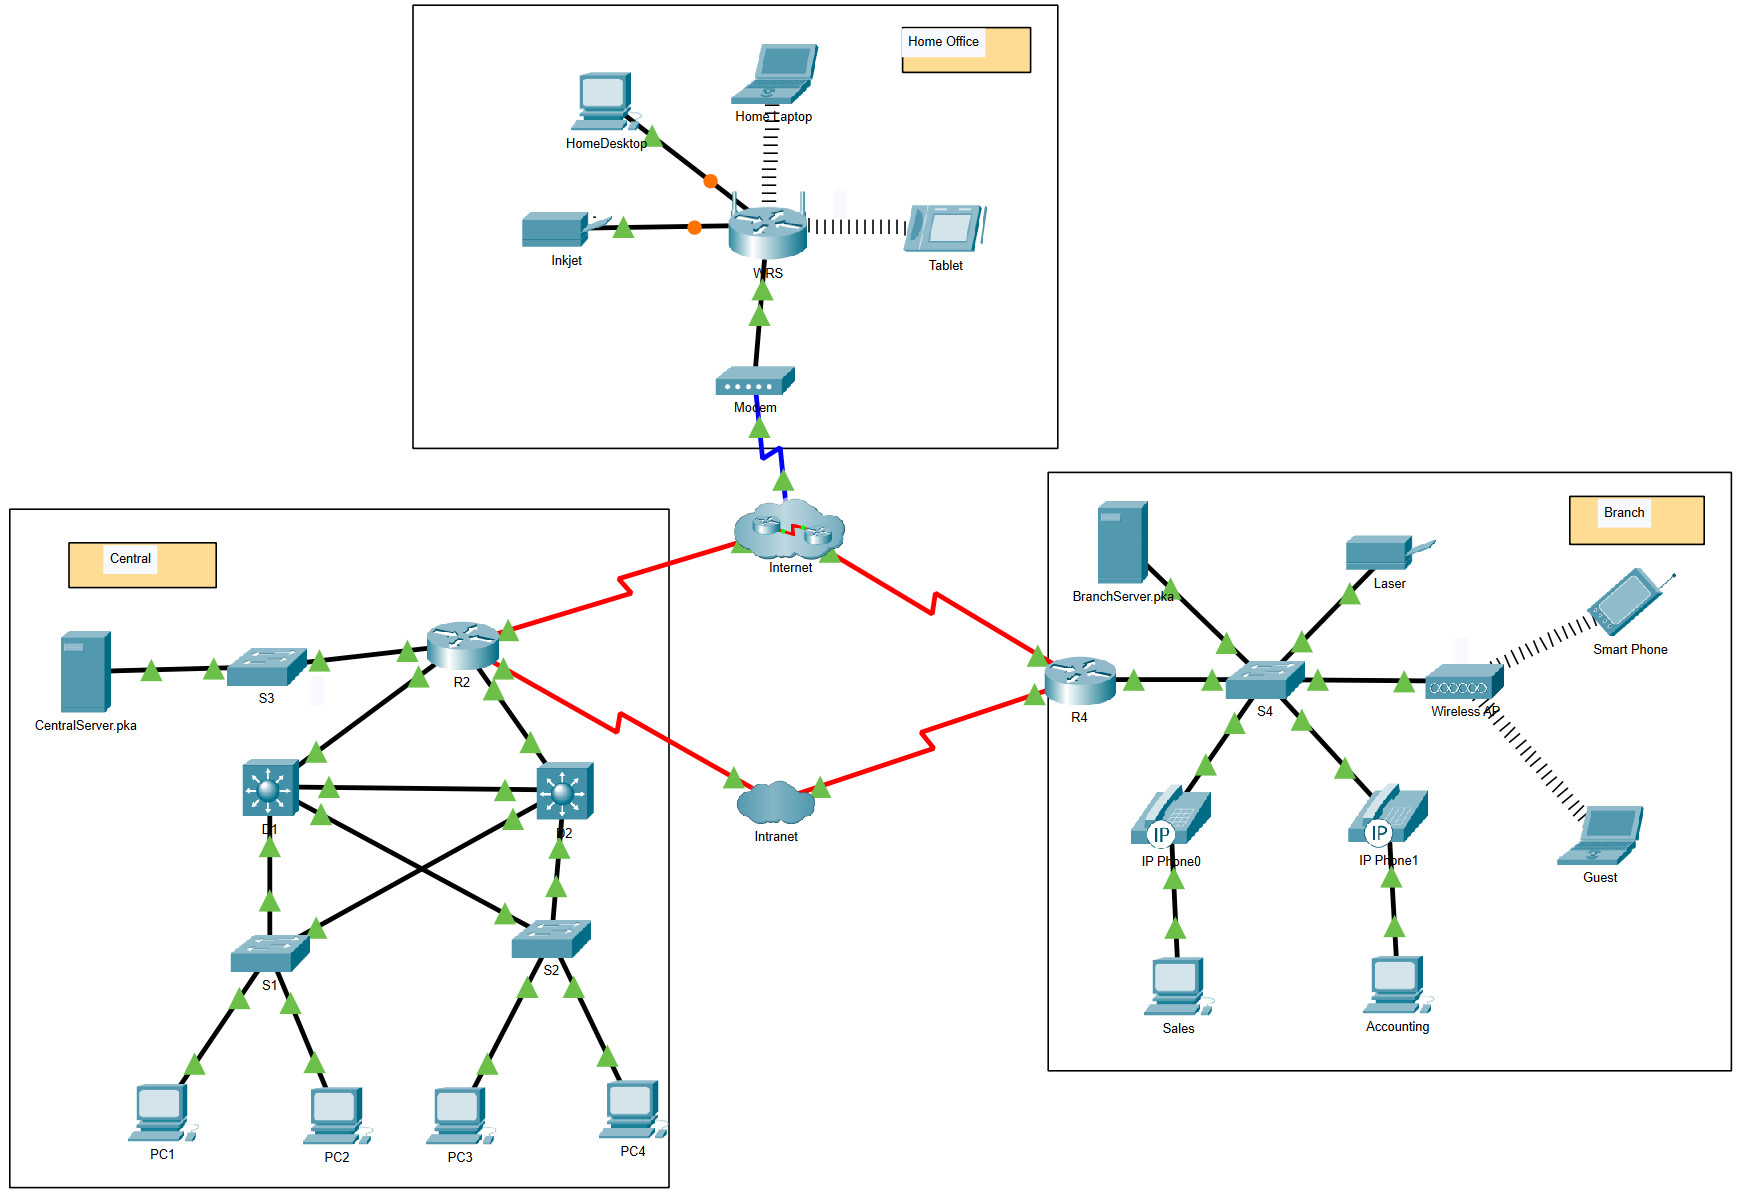 6.2.7 Packet Tracer – Investigate NAT Operation (Answers)